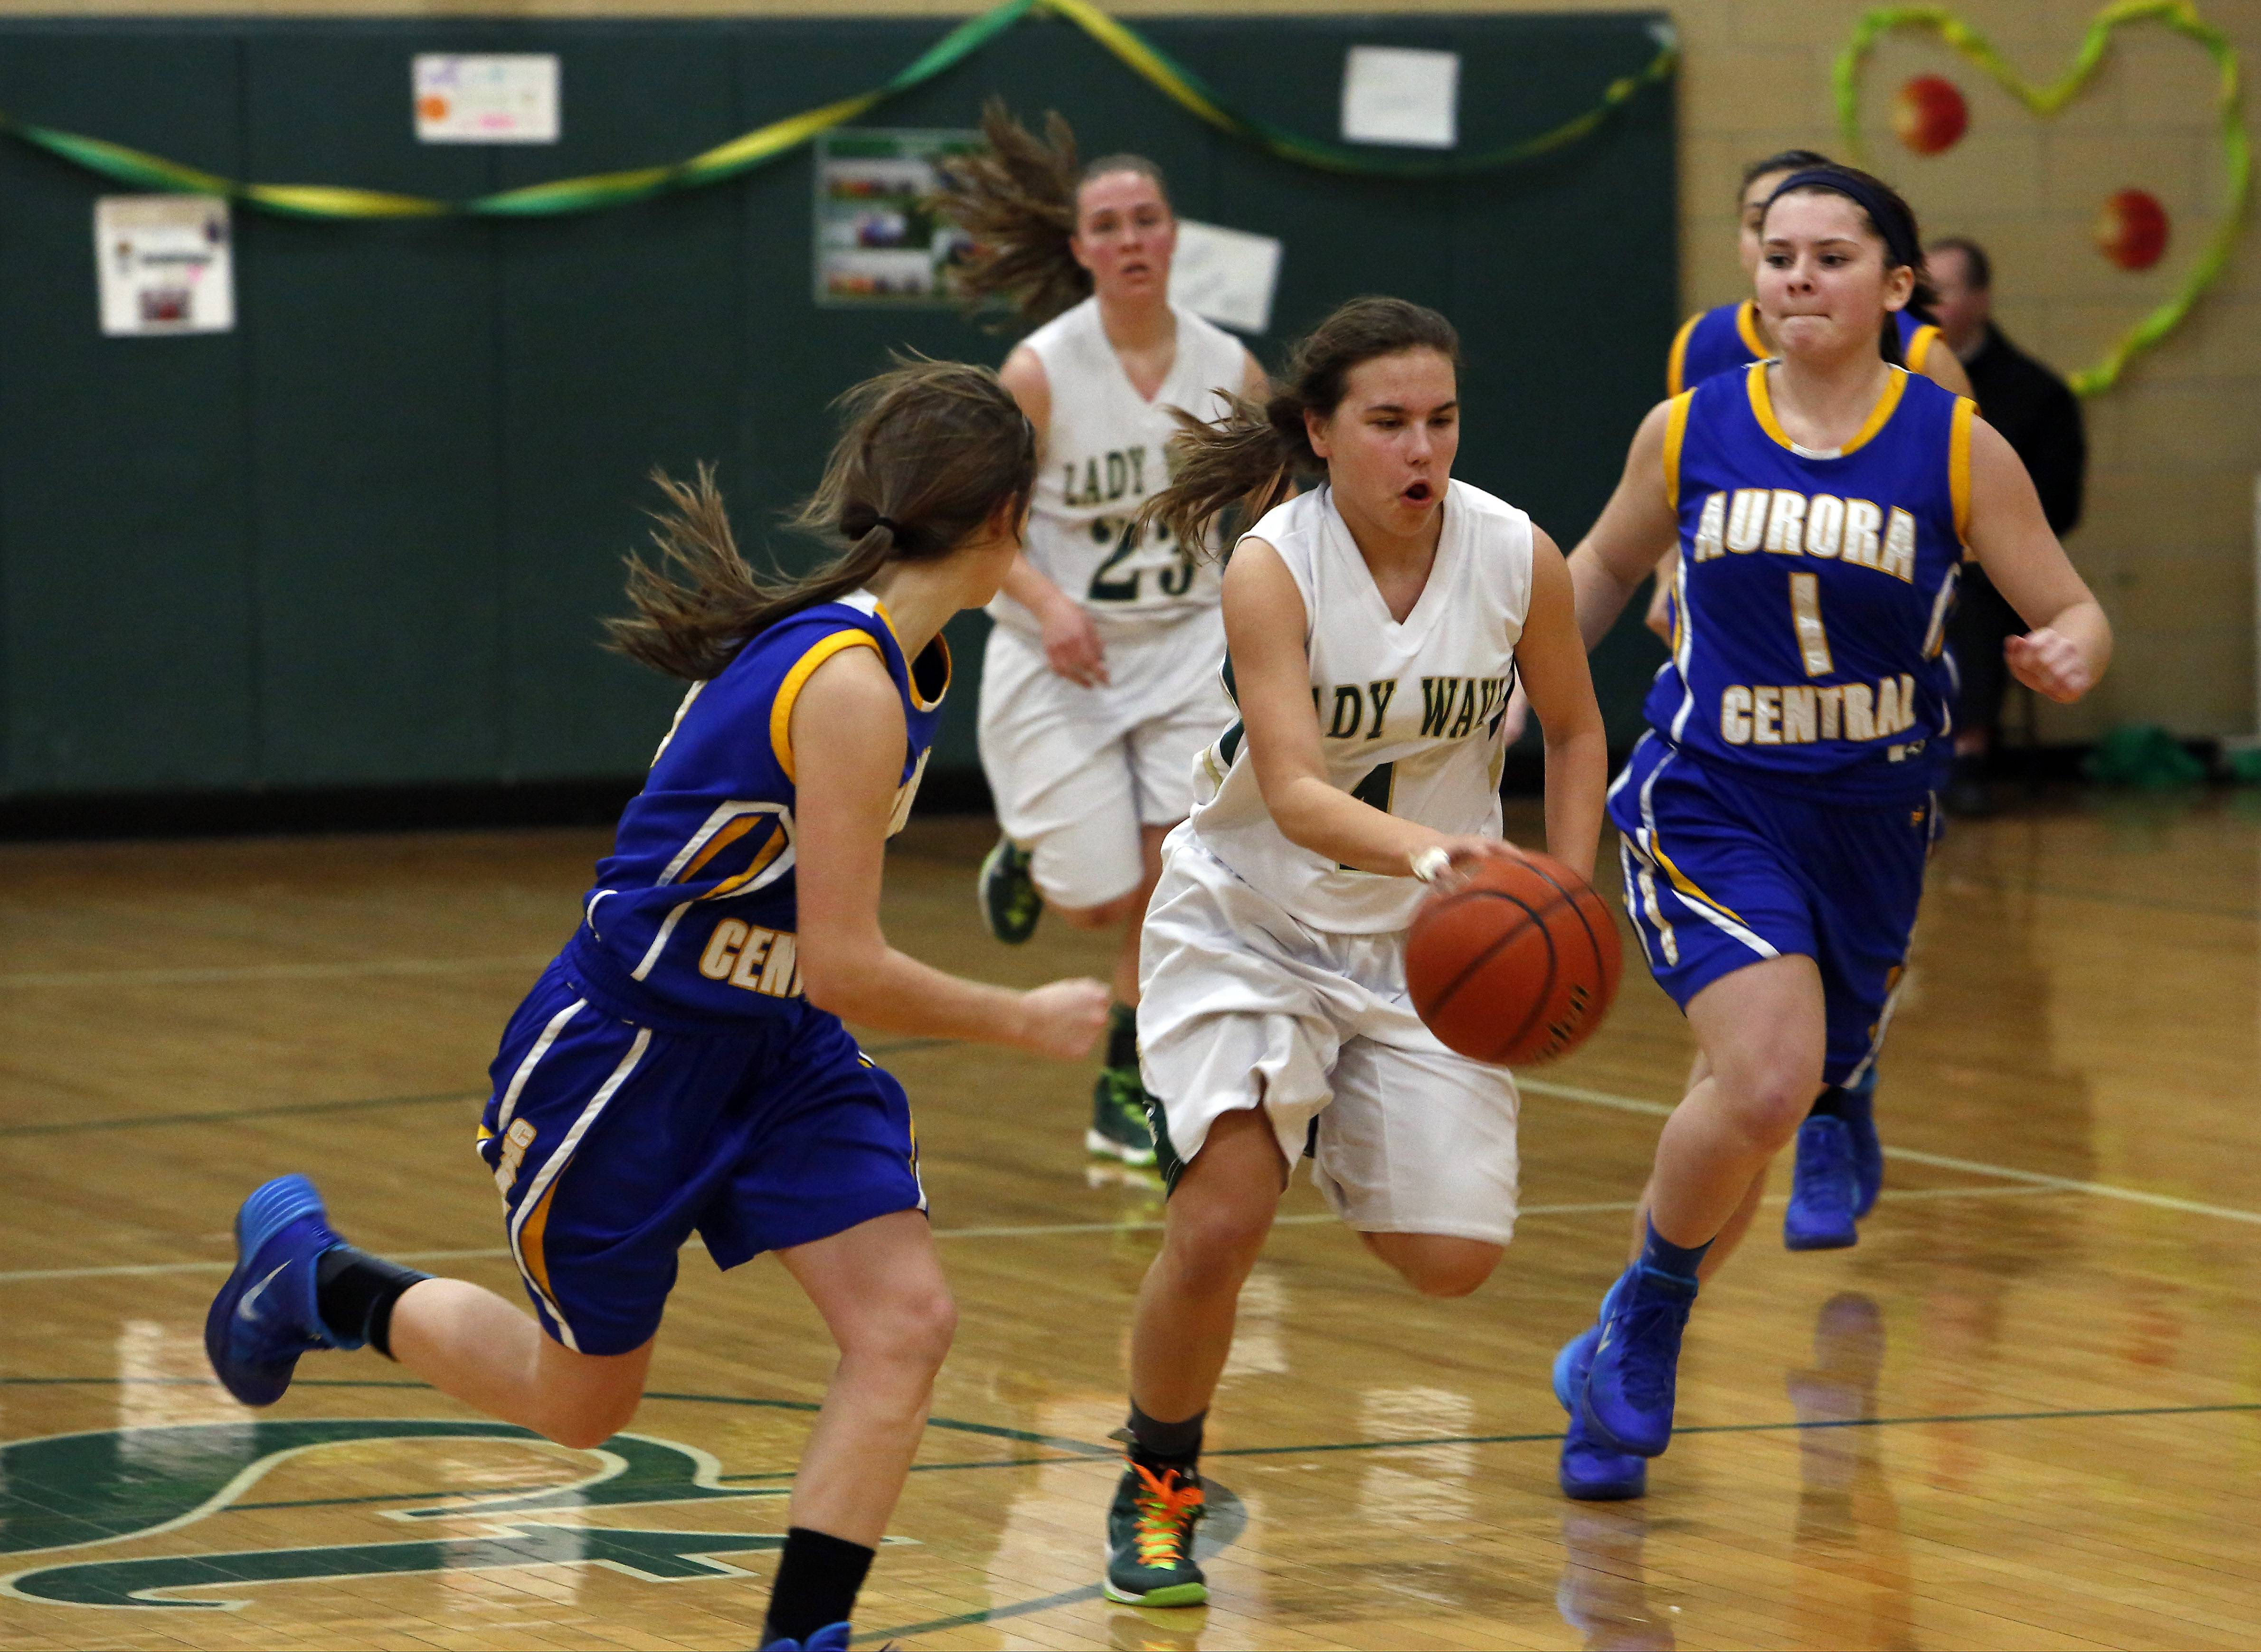 Images from the Aurora Central Catholic at St. Edward girls basketball game on Friday, Feb. 14, 2014.